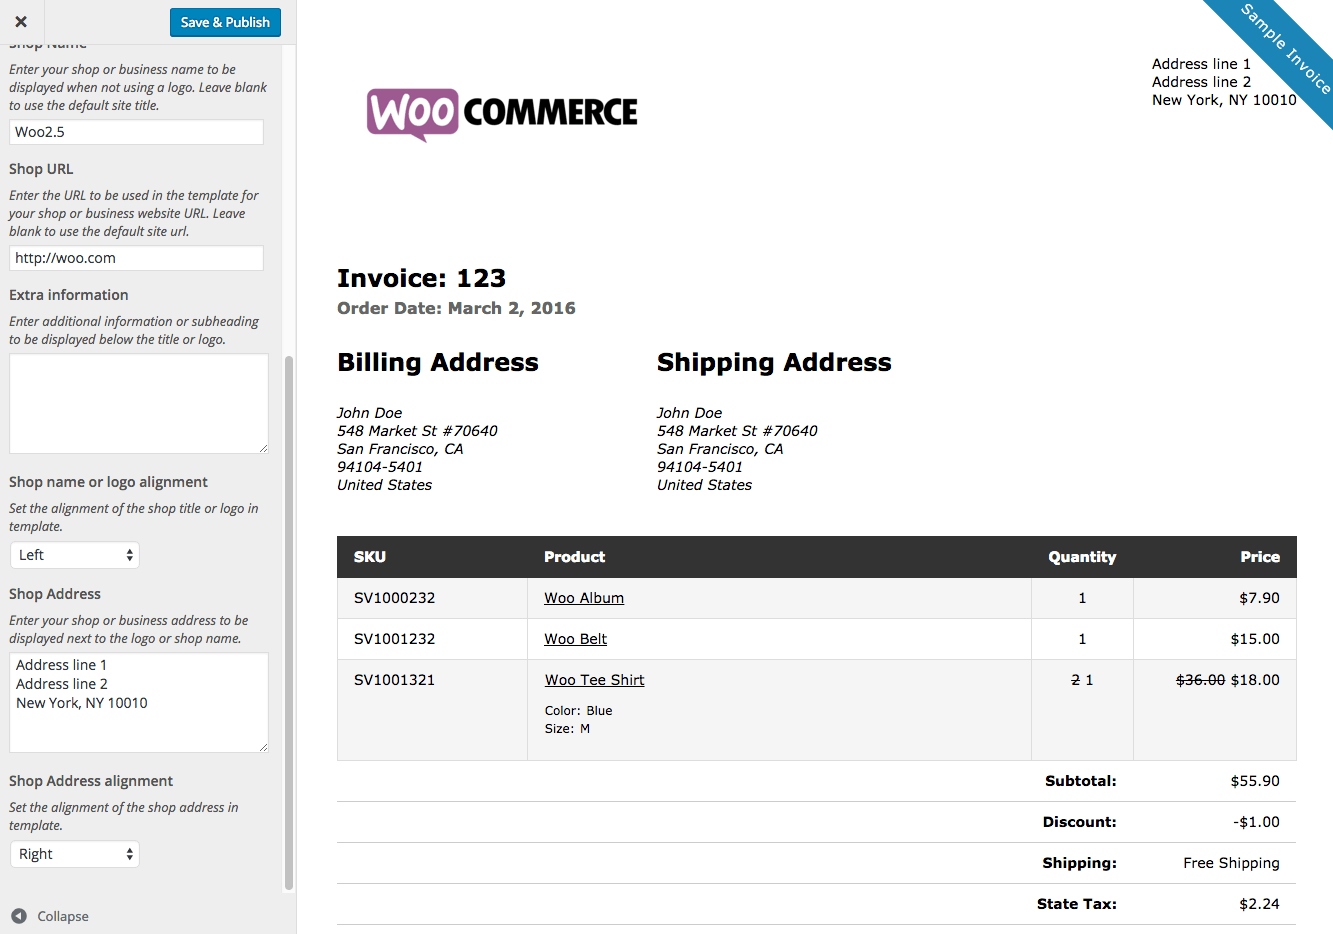 Soulfulpowerus  Pleasing Woocommerce Print Invoices Amp Packing Lists  Woocommerce Docs With Fetching Woocommerce Print Invoices  Packing Lists Customizer With Easy On The Eye Return Receipt Certified Mail Also Square Register Receipt Printer In Addition Repair Receipt And Meat Loaf Receipt As Well As Best Receipt Apps Additionally What Is A Gross Receipt From Docswoocommercecom With Soulfulpowerus  Fetching Woocommerce Print Invoices Amp Packing Lists  Woocommerce Docs With Easy On The Eye Woocommerce Print Invoices  Packing Lists Customizer And Pleasing Return Receipt Certified Mail Also Square Register Receipt Printer In Addition Repair Receipt From Docswoocommercecom